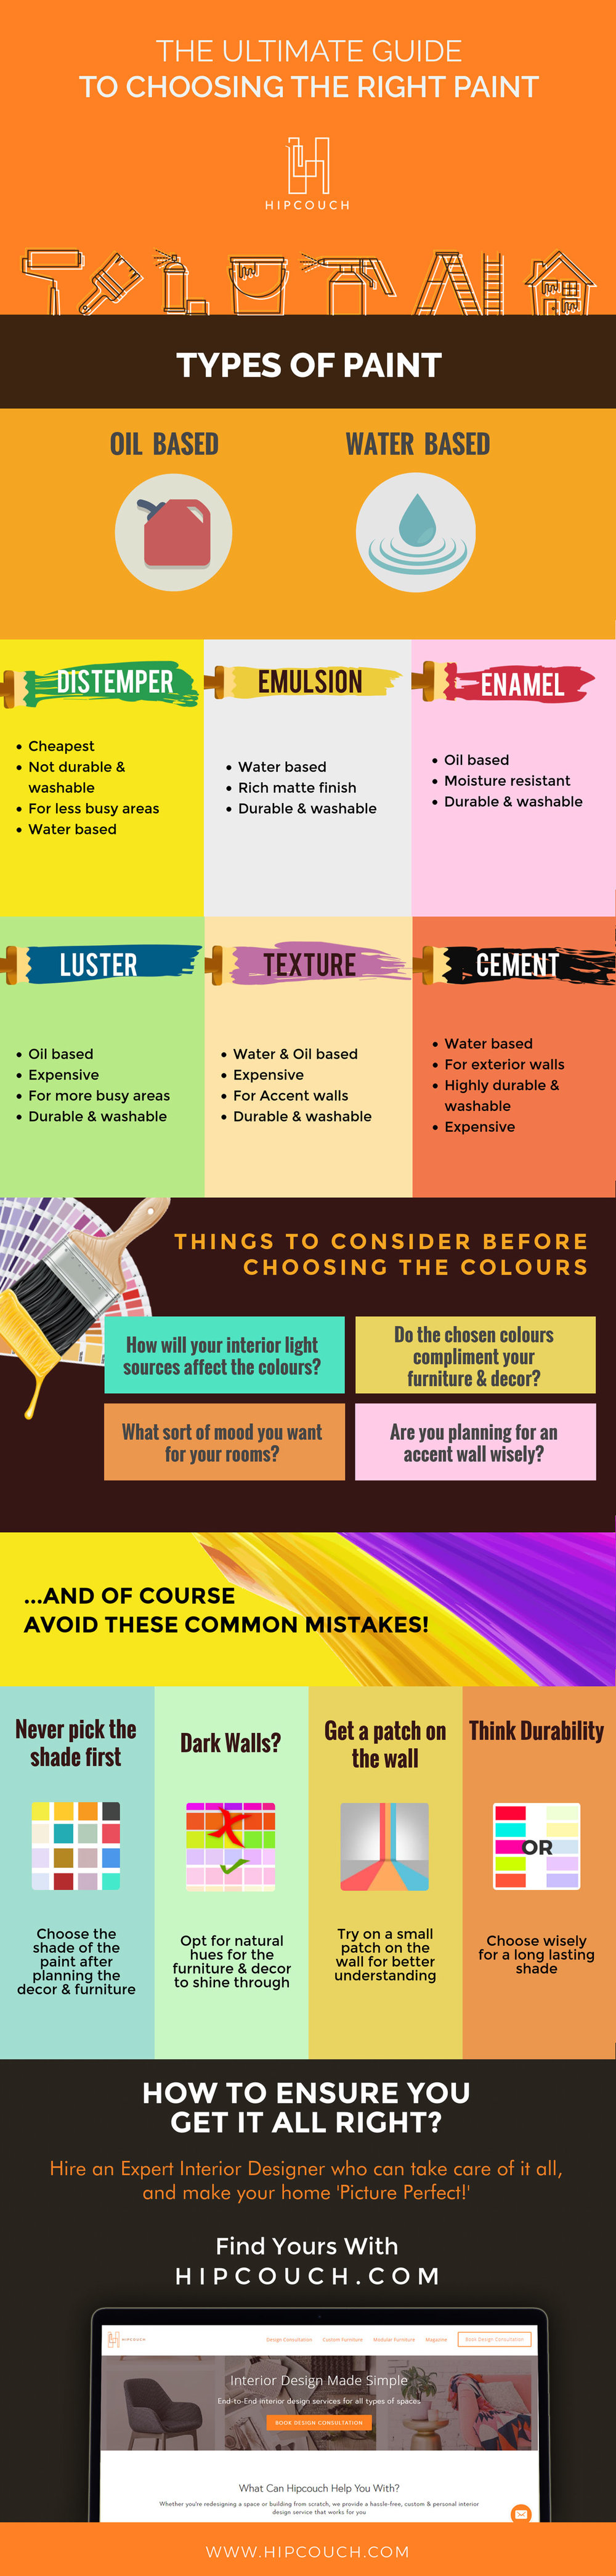 Choosing the right type of paint for your home - a visual guide